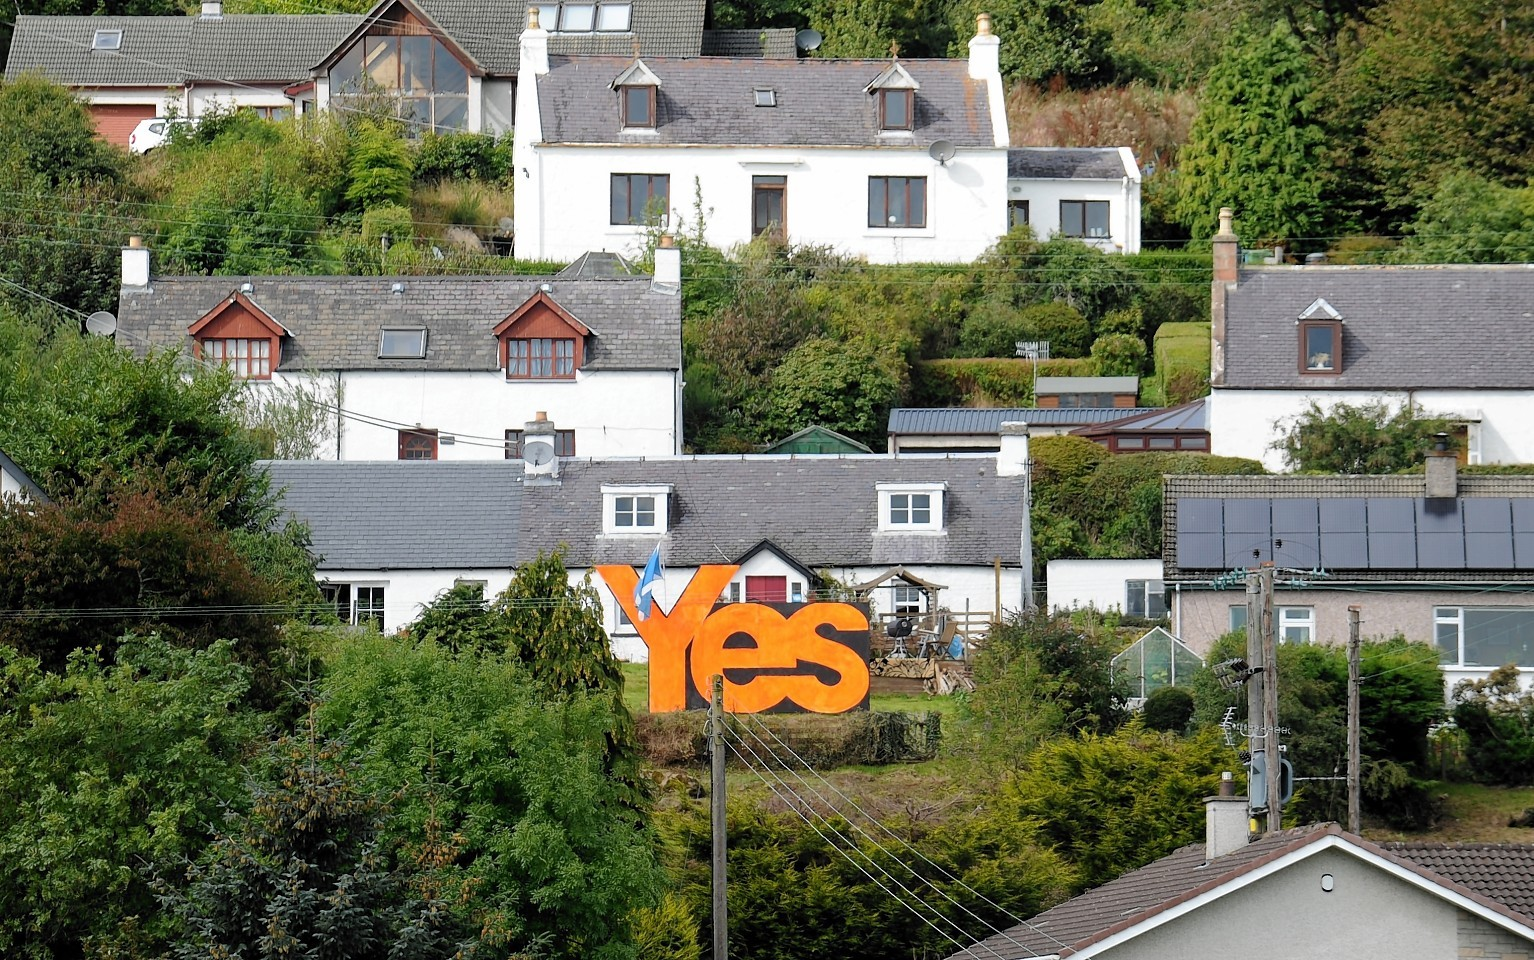 Giant Yes sign in Inverness